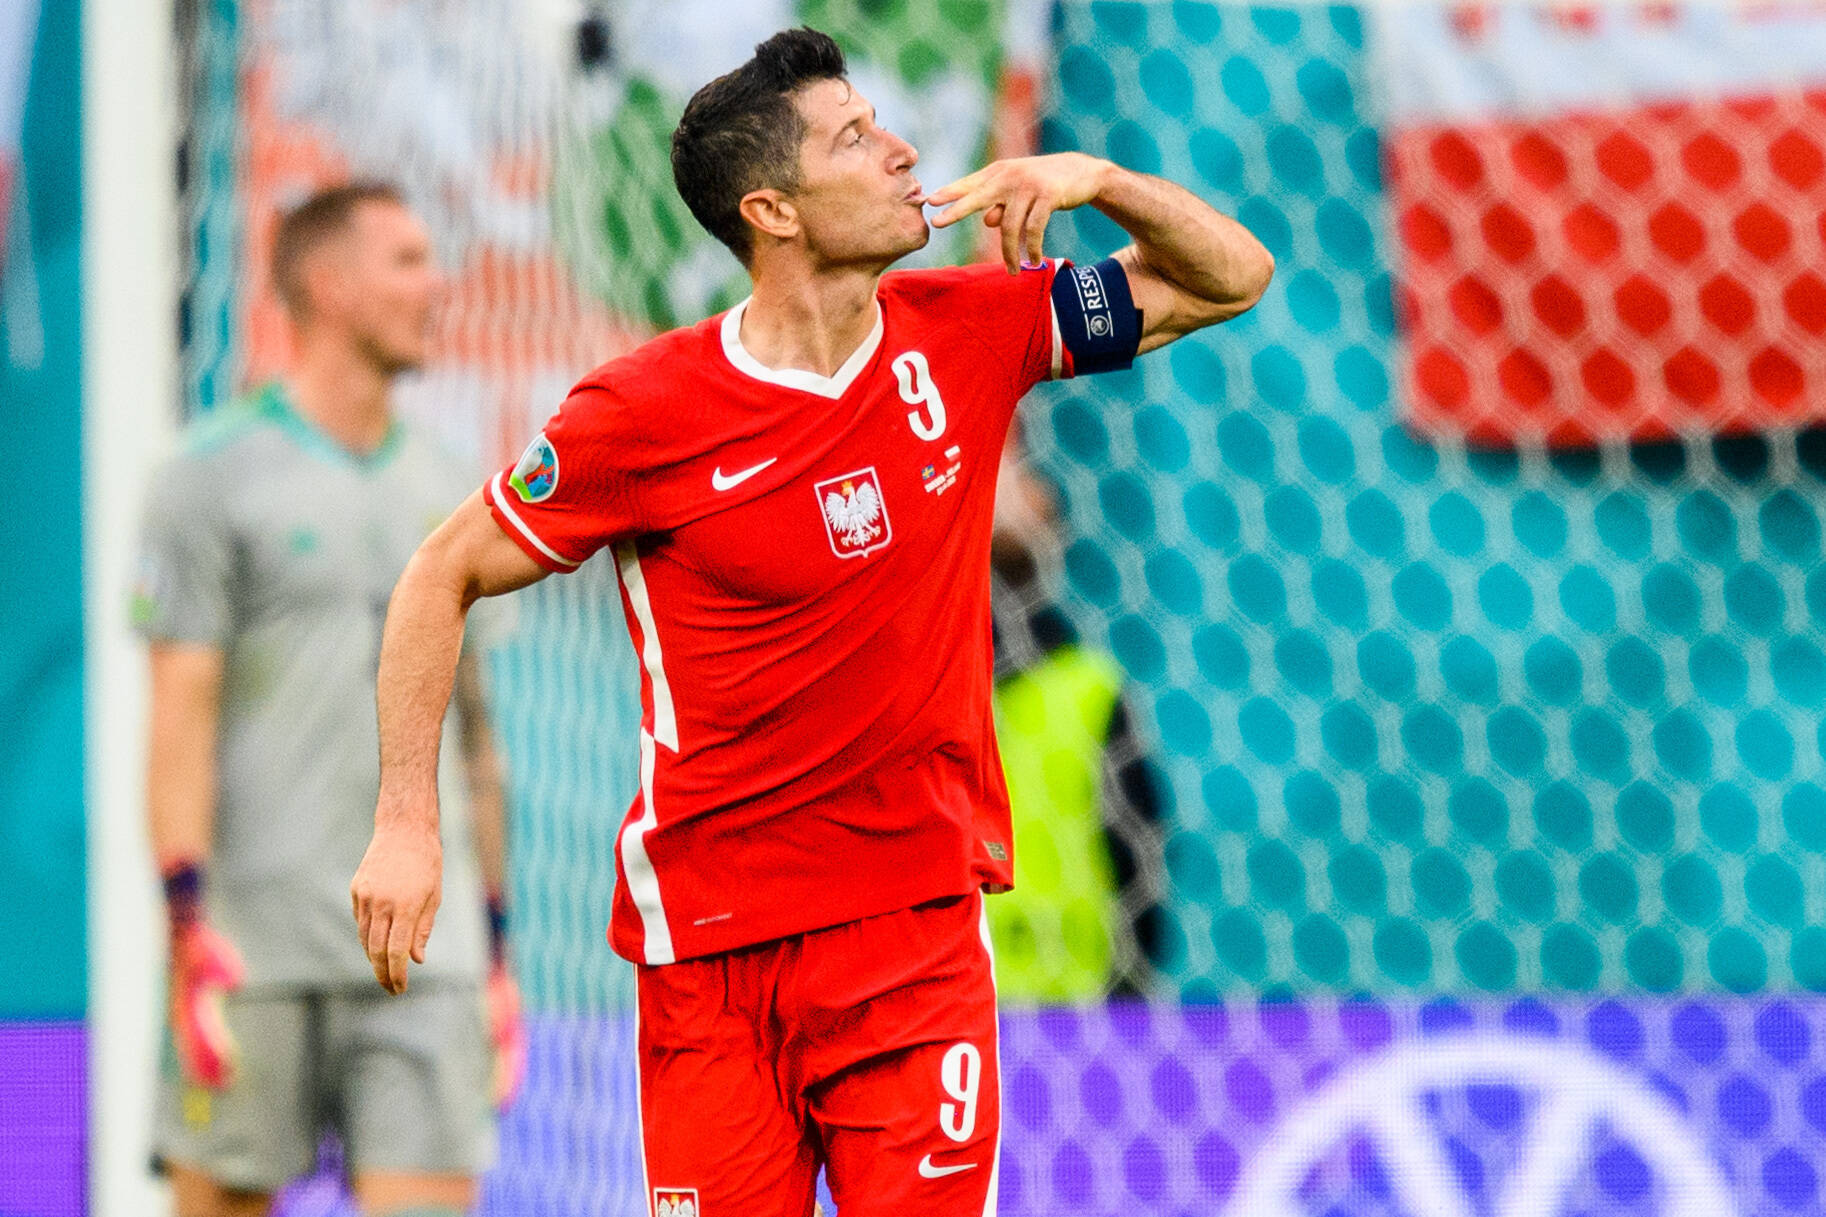 Liverpool offered a chance to land Lewandowski who is seen in the photo